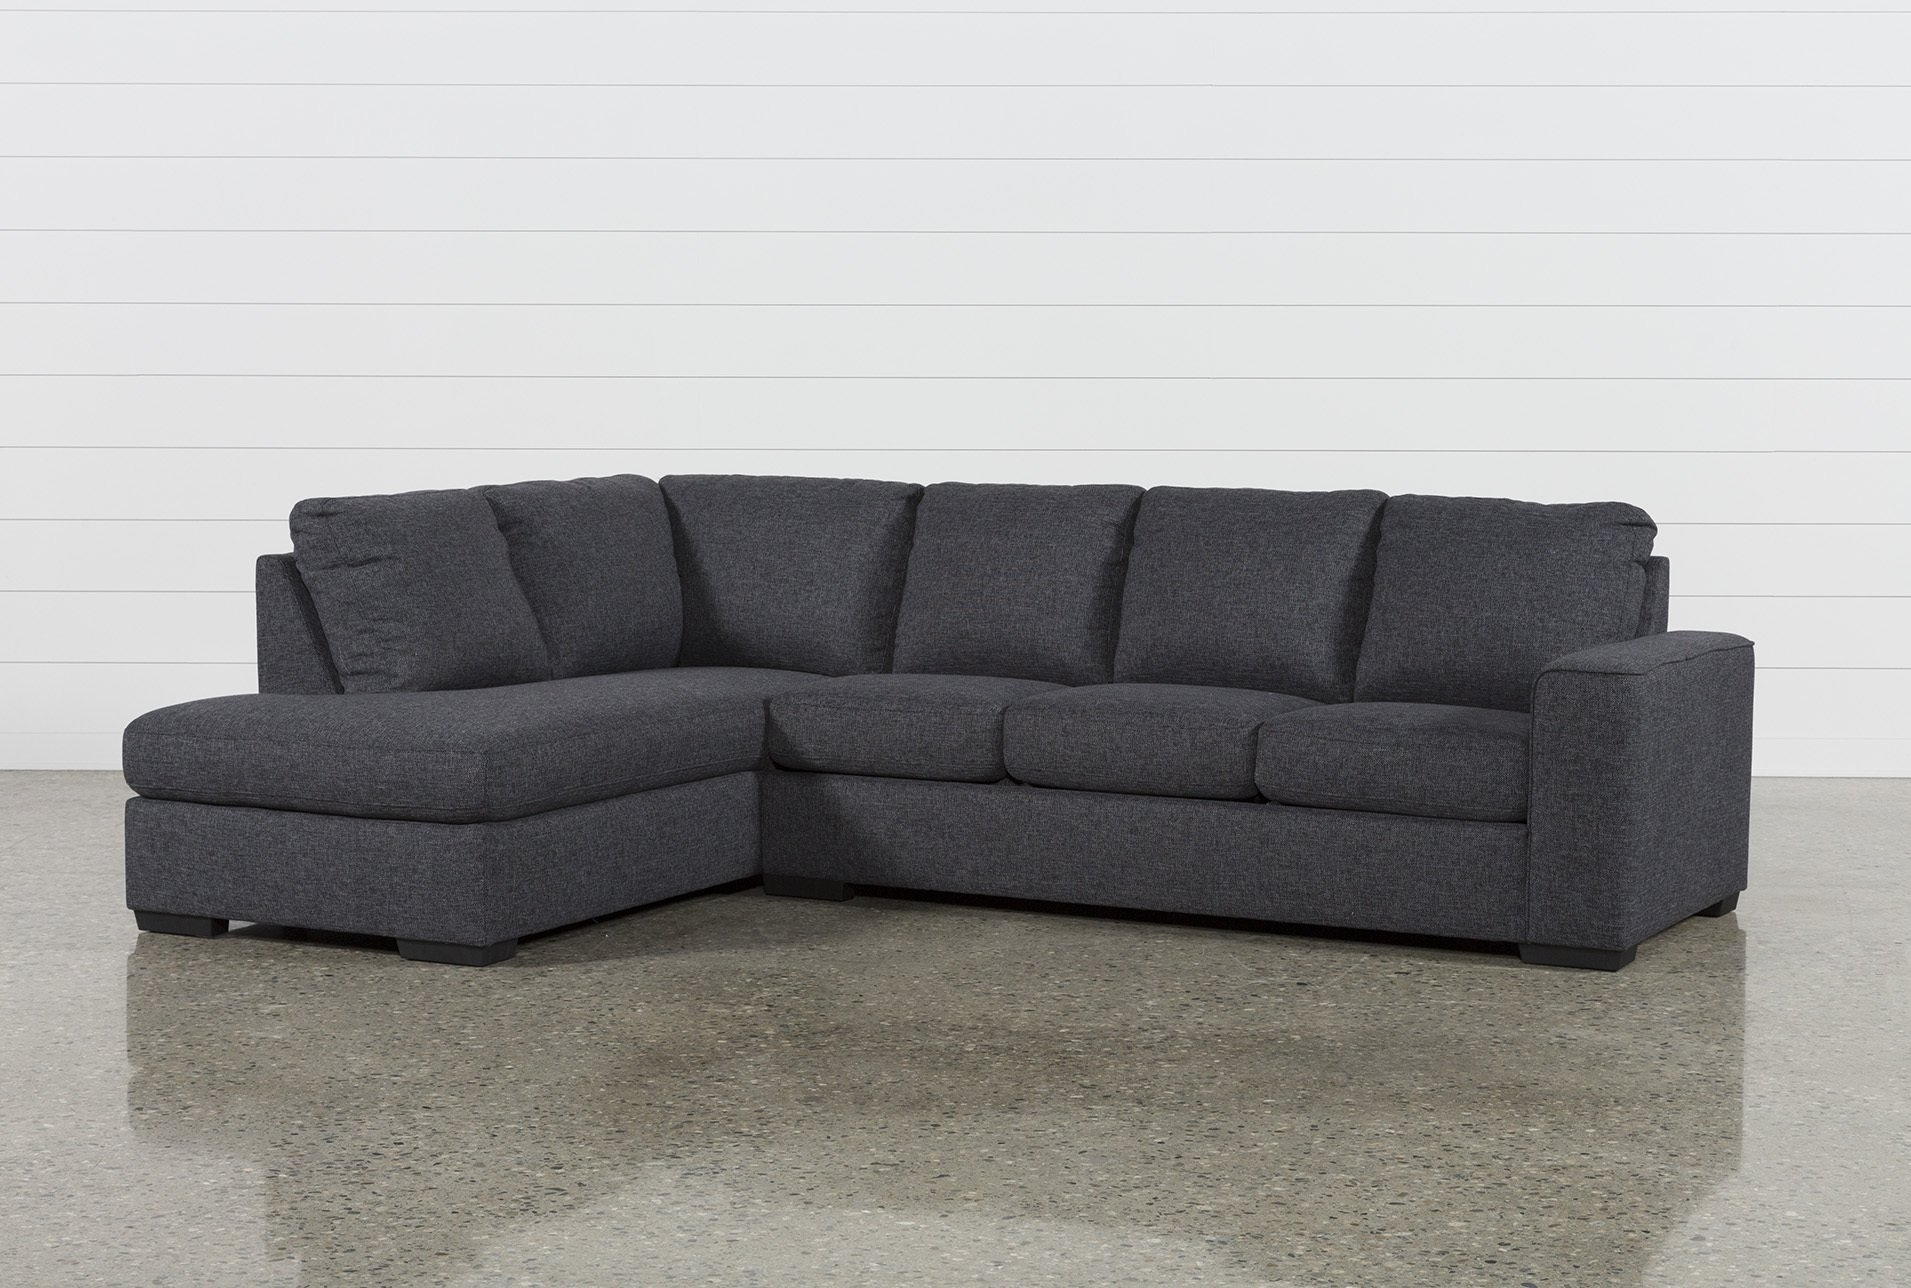 Lucy Dark Grey 2 Piece Sectional W/laf Chaise   Dark Grey And Products For Malbry Point 3 Piece Sectionals With Raf Chaise (View 11 of 25)